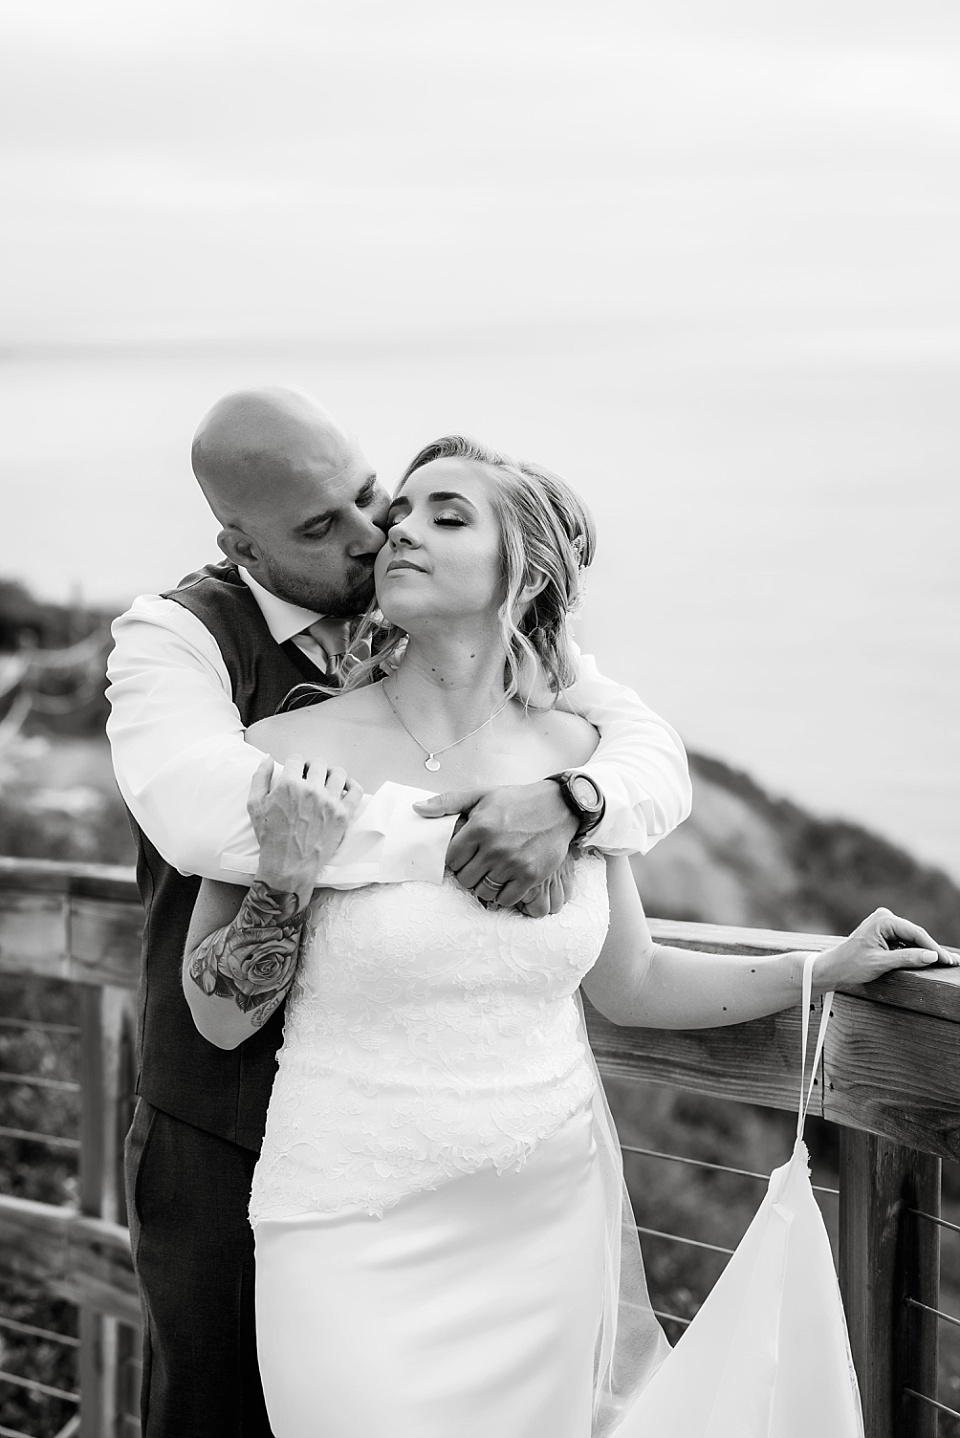 romantic black and white couples photography outdoor wedding venues in san diego